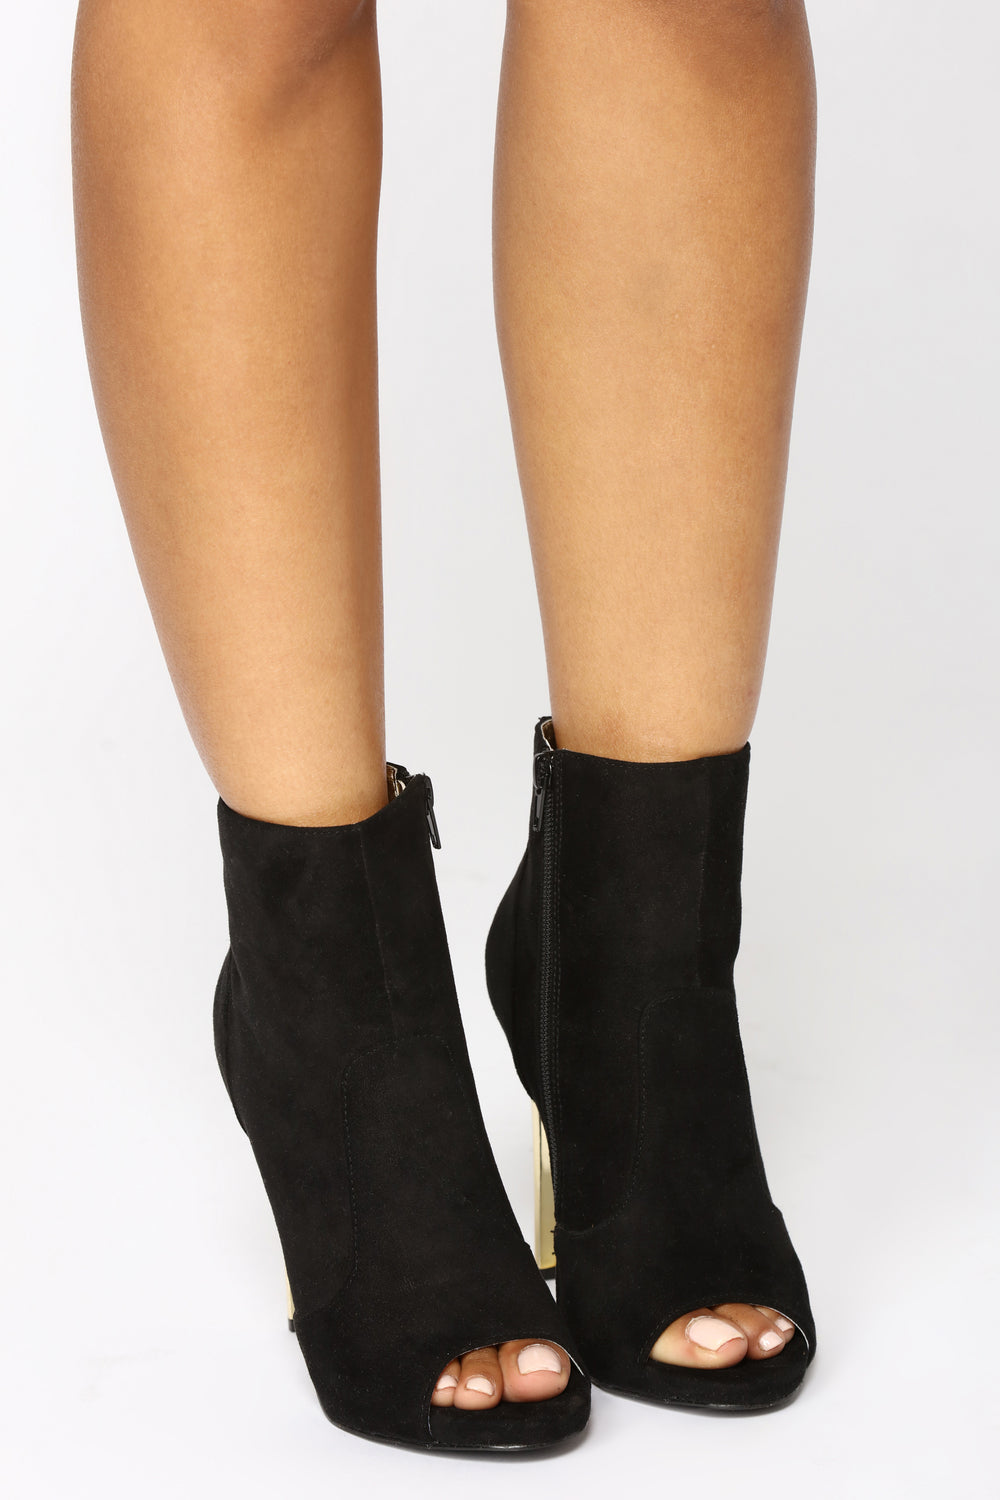 Marilyn Suede Bootie - Black